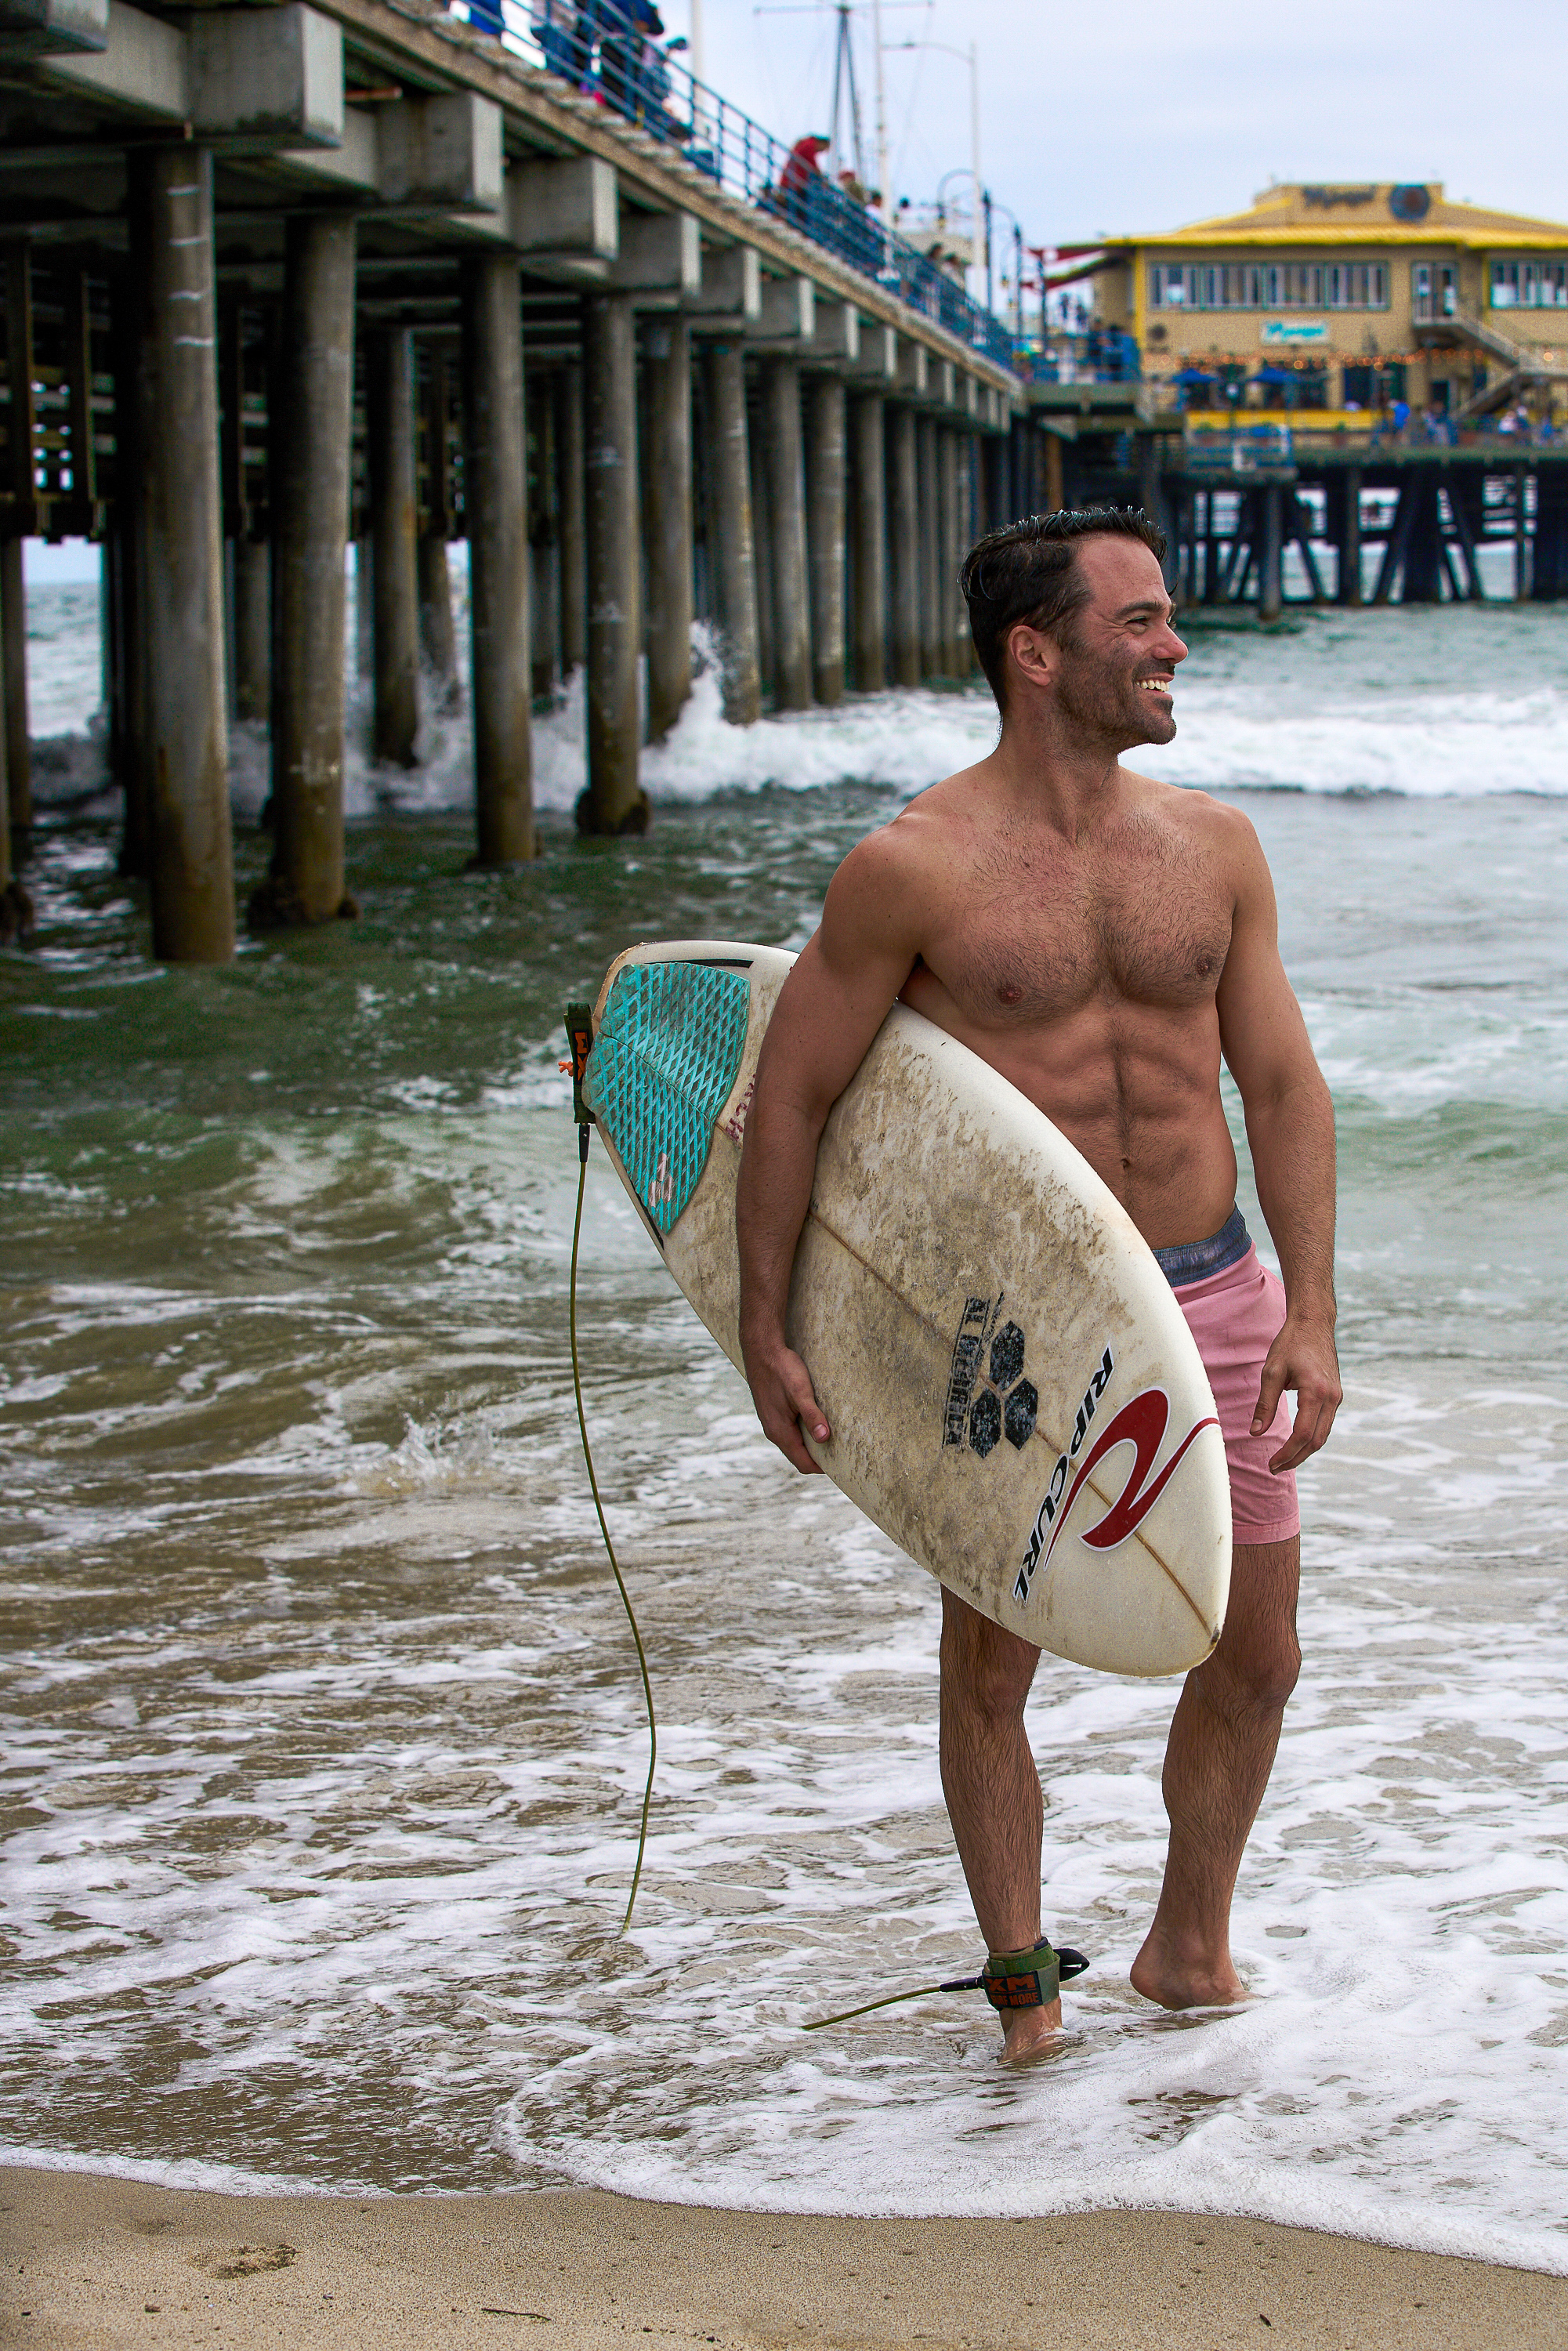 Perfect Day in Santa Monica 5 hour ENERGY Justin Walter surfing